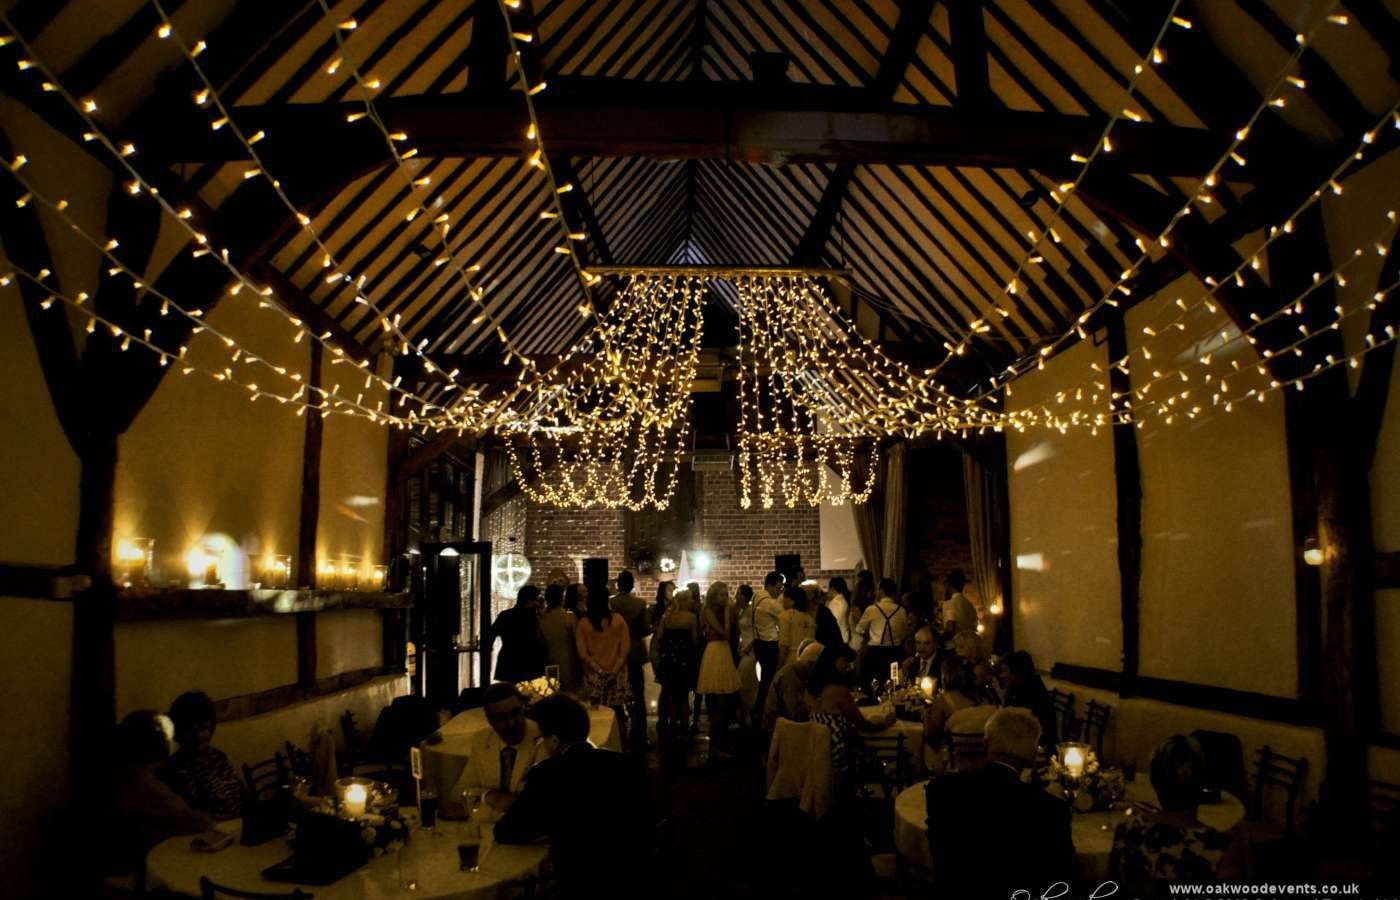 Decorative lights for weddings - Another Cute Simple Idea For The Reception Decor